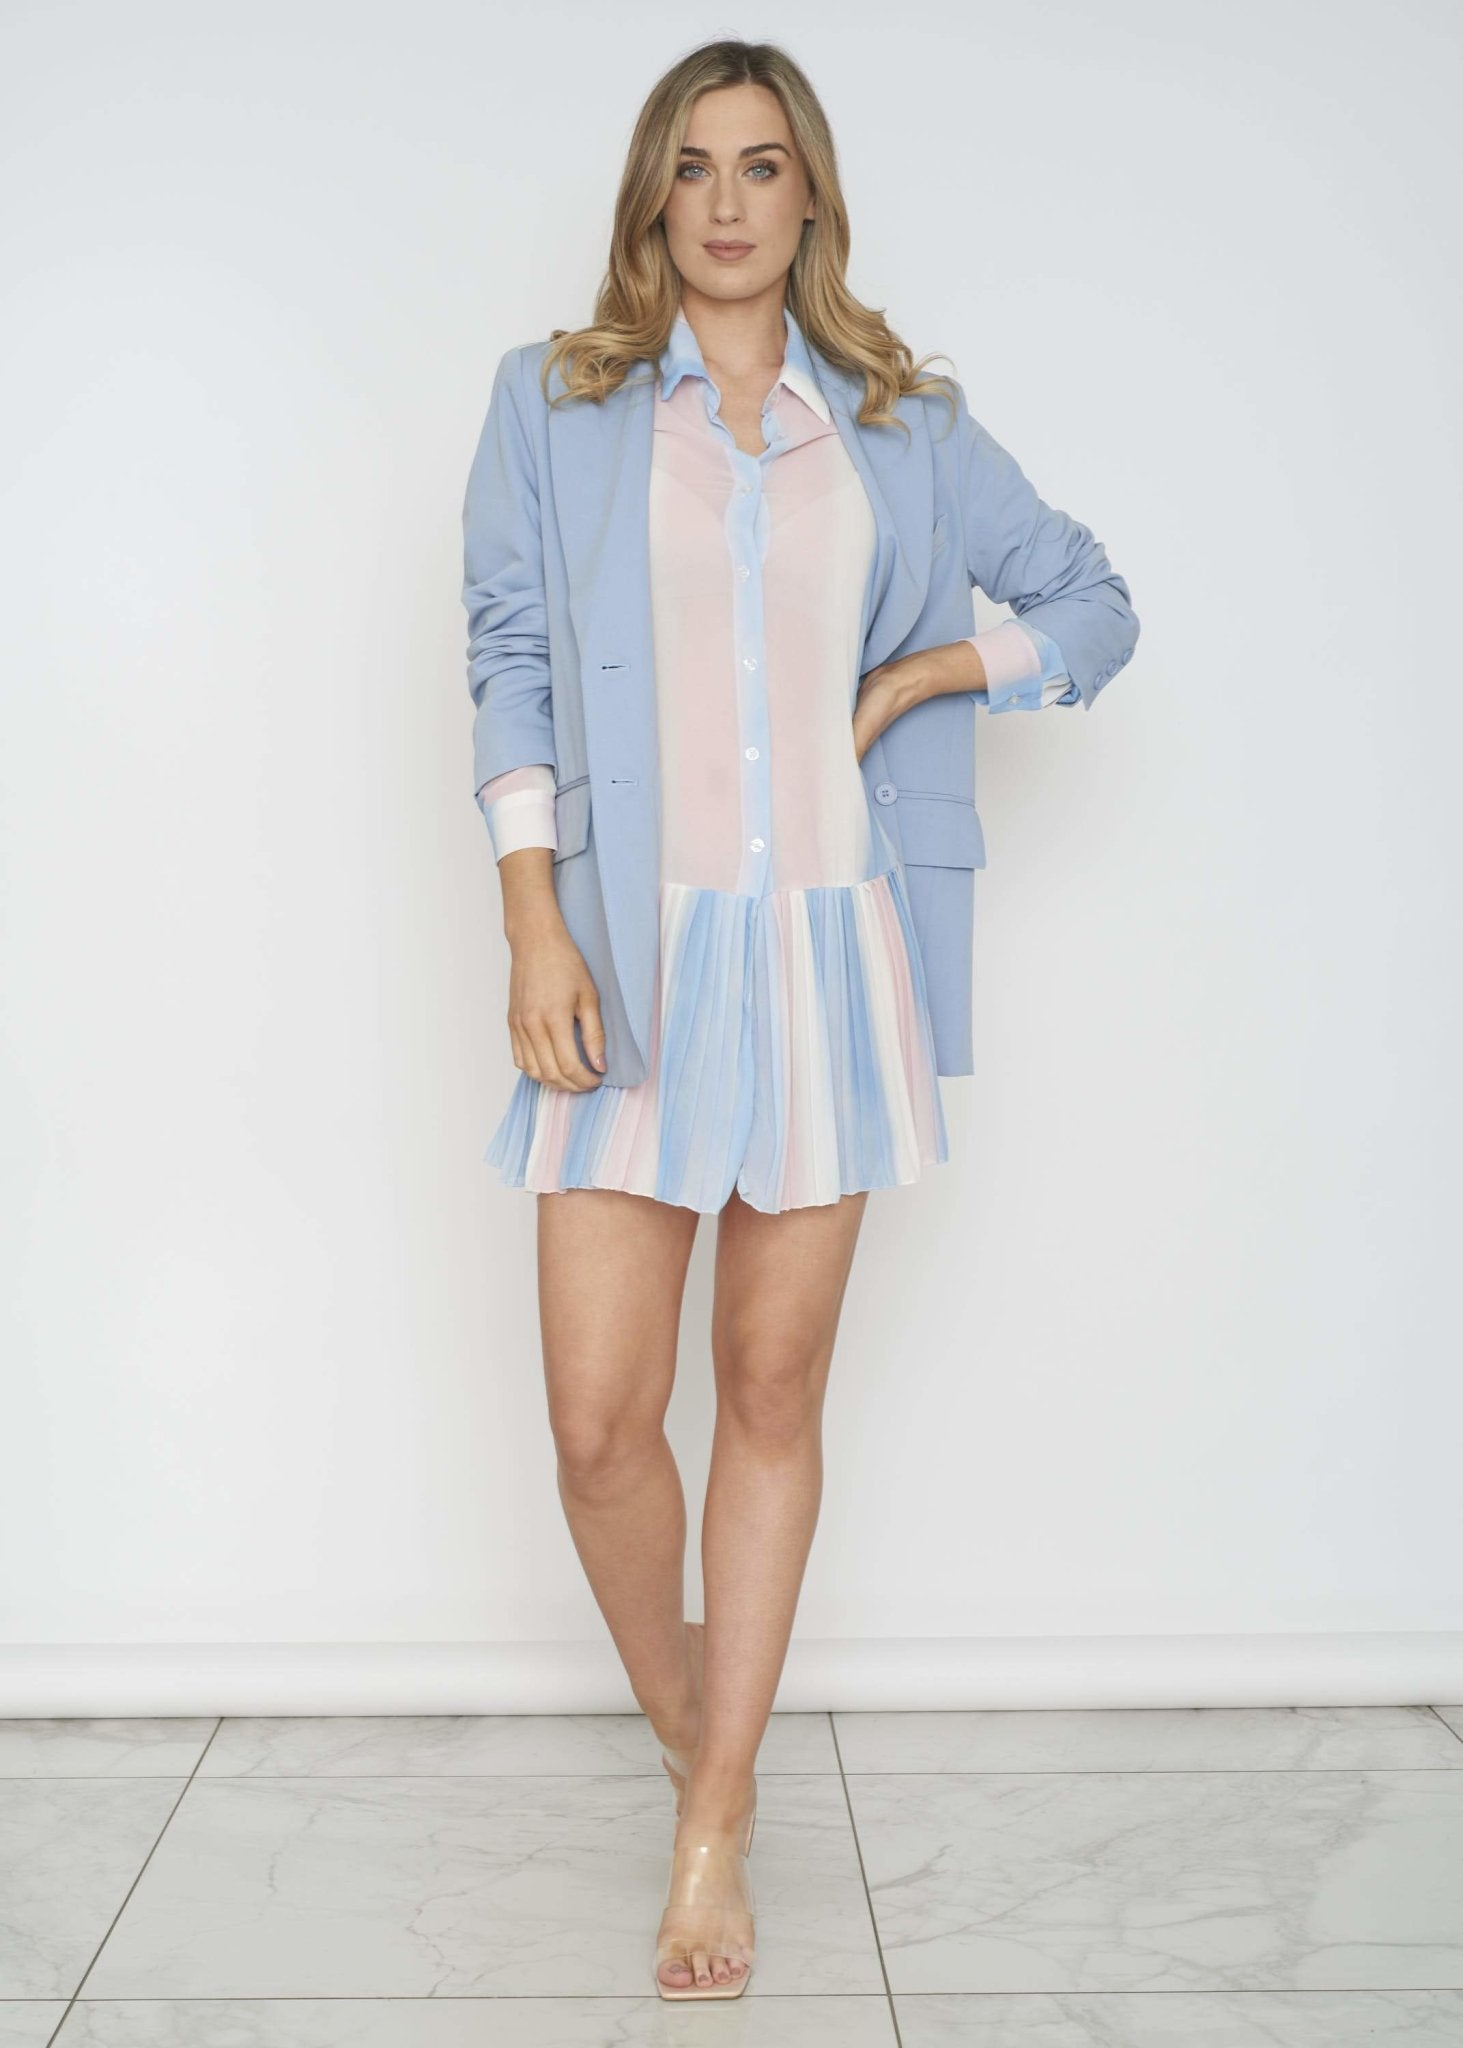 Polly Pleated Shirt Dress In Blue Mix - The Walk in Wardrobe